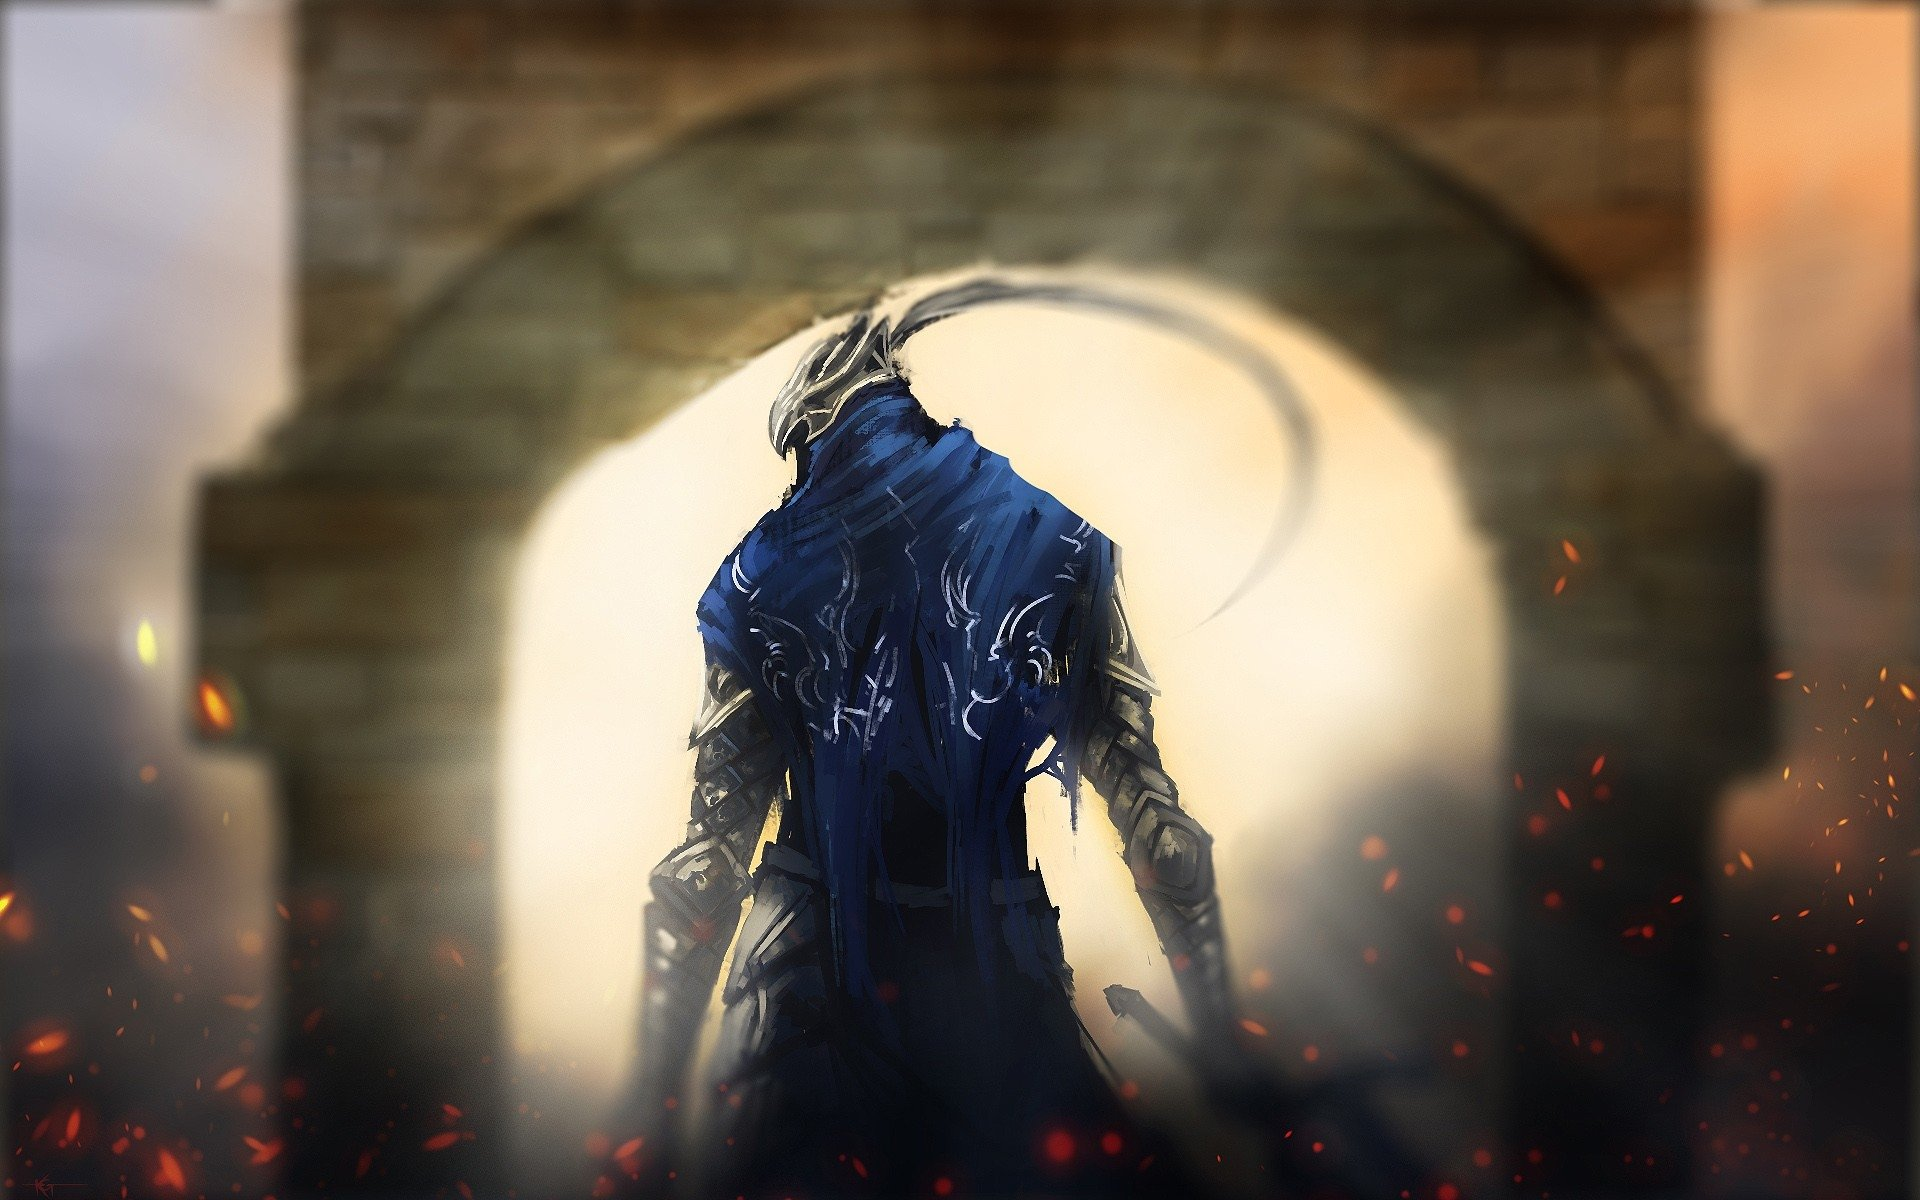 Video Game - Dark Souls  Dark Knight Artorias (Dark Souls) Wallpaper